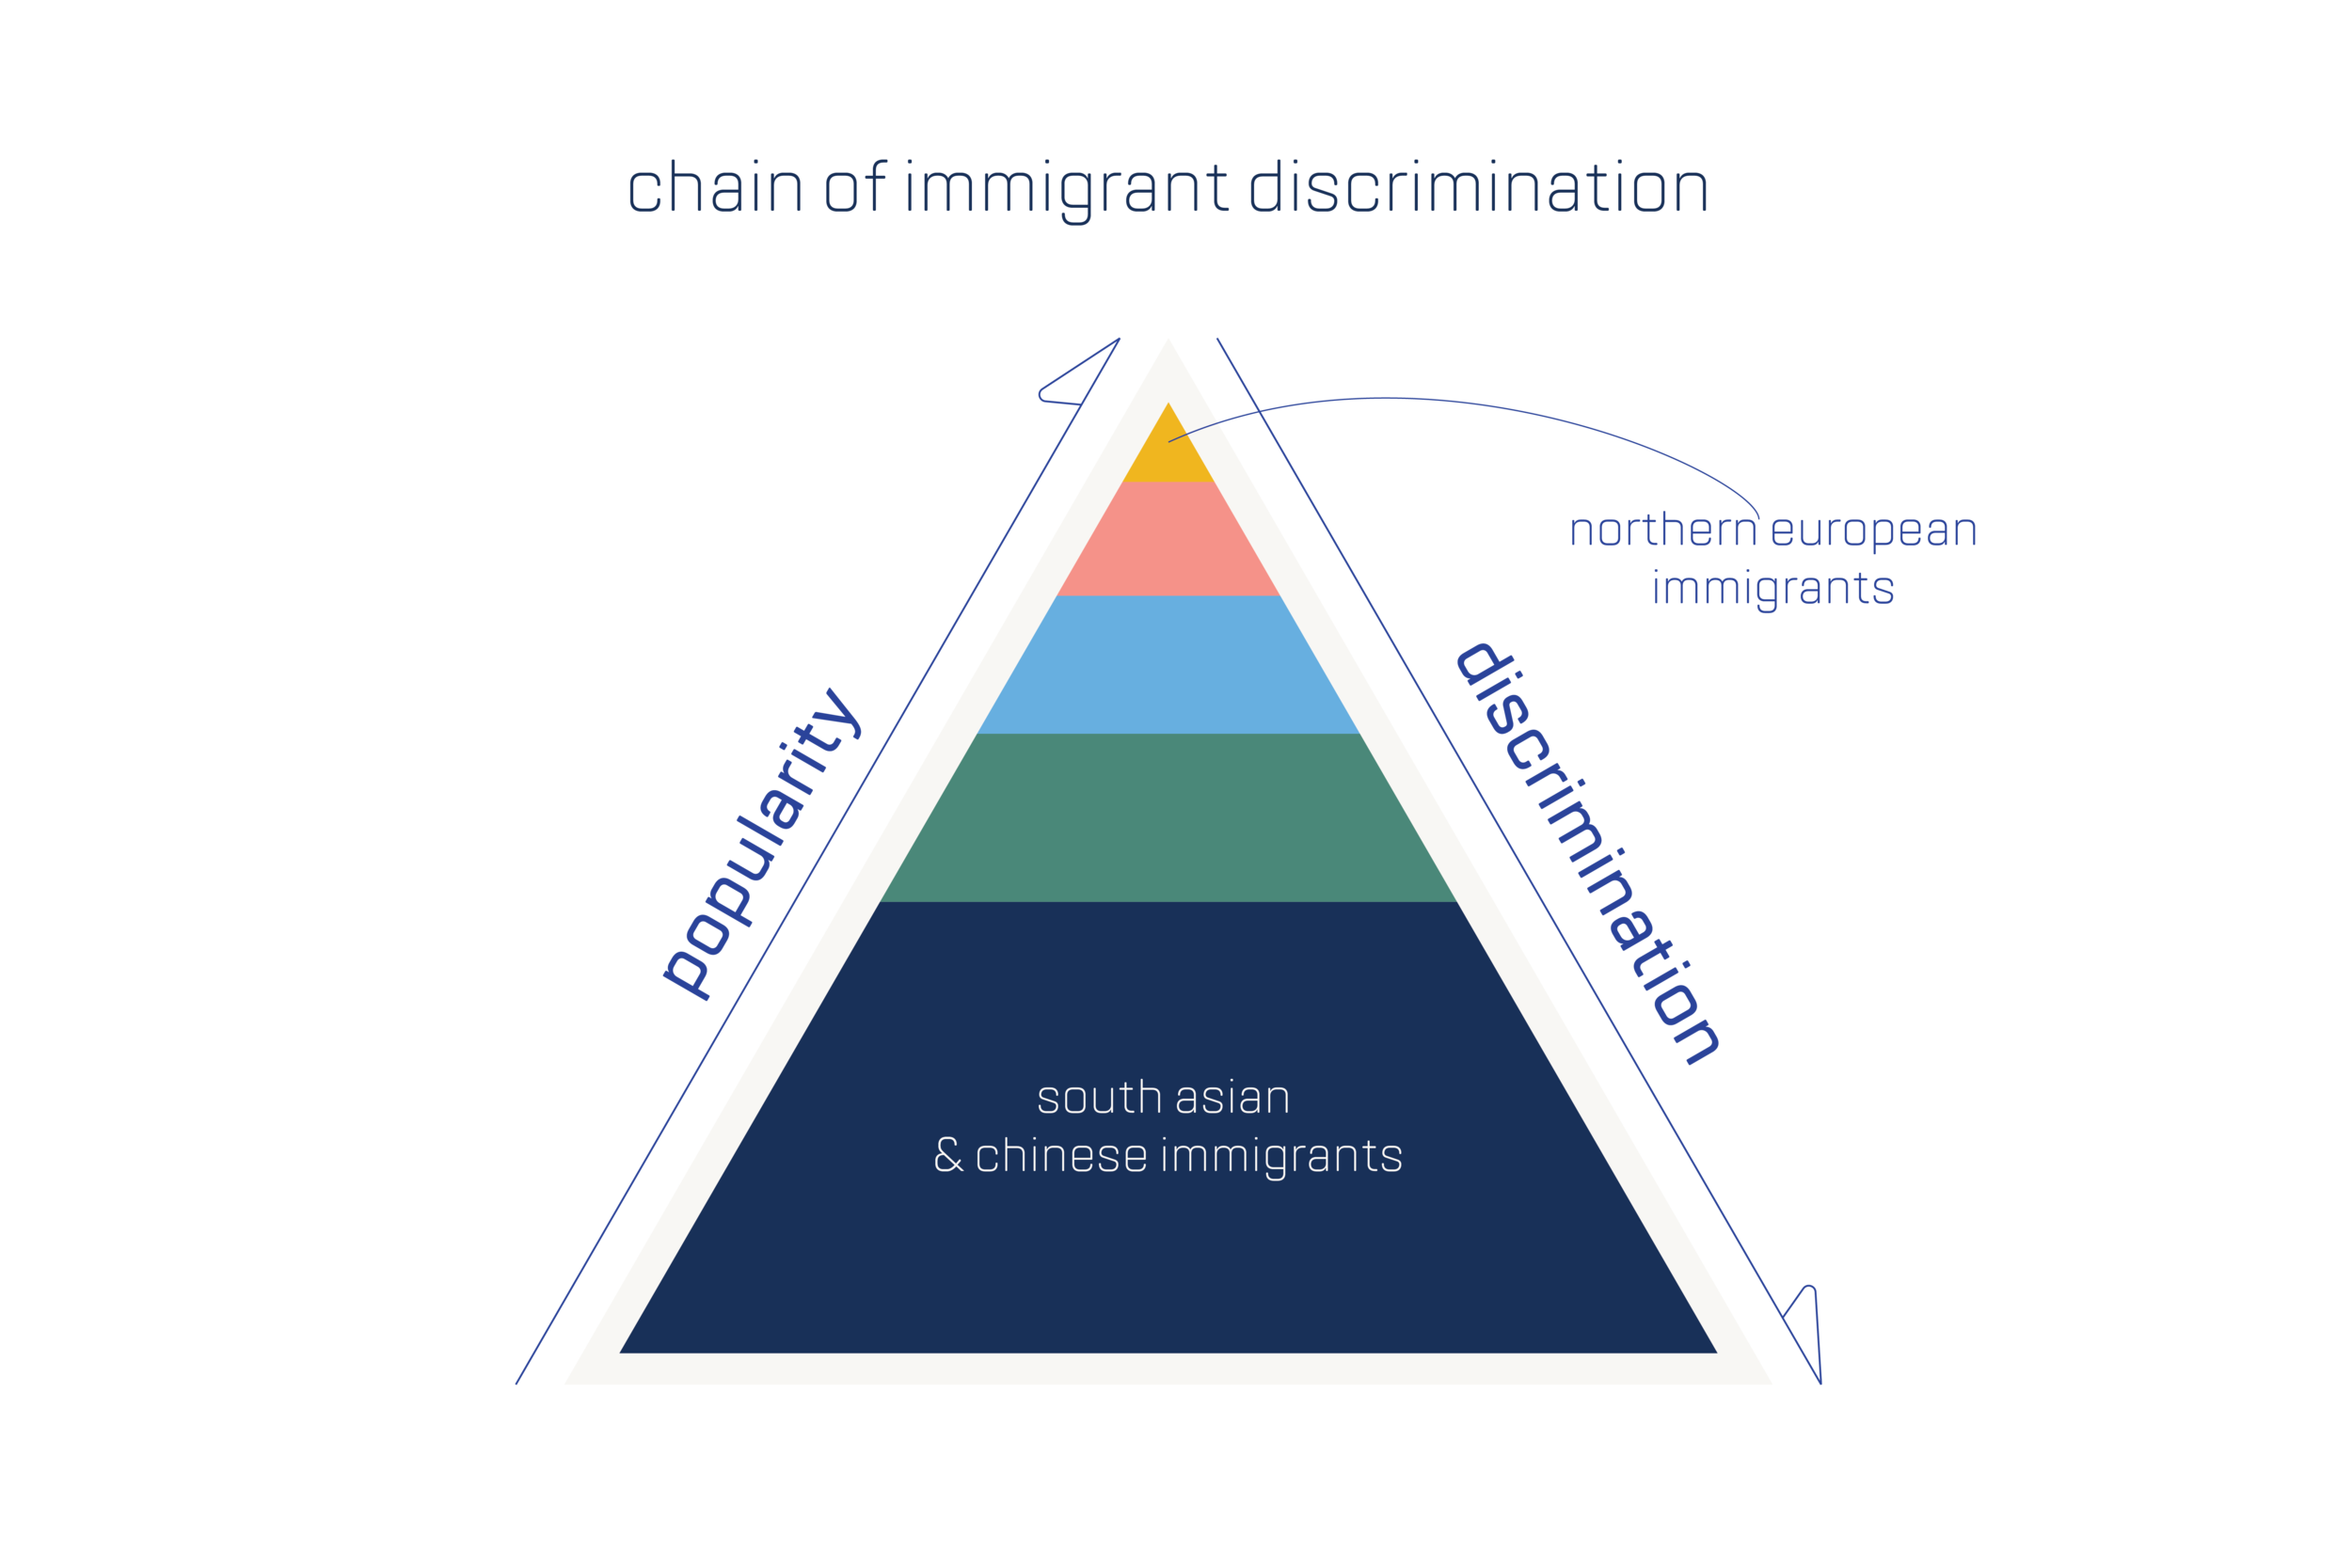 with the discovery of the 'immigrant pyramid', preference of ethnic names, origins and stereotypes become important departure points